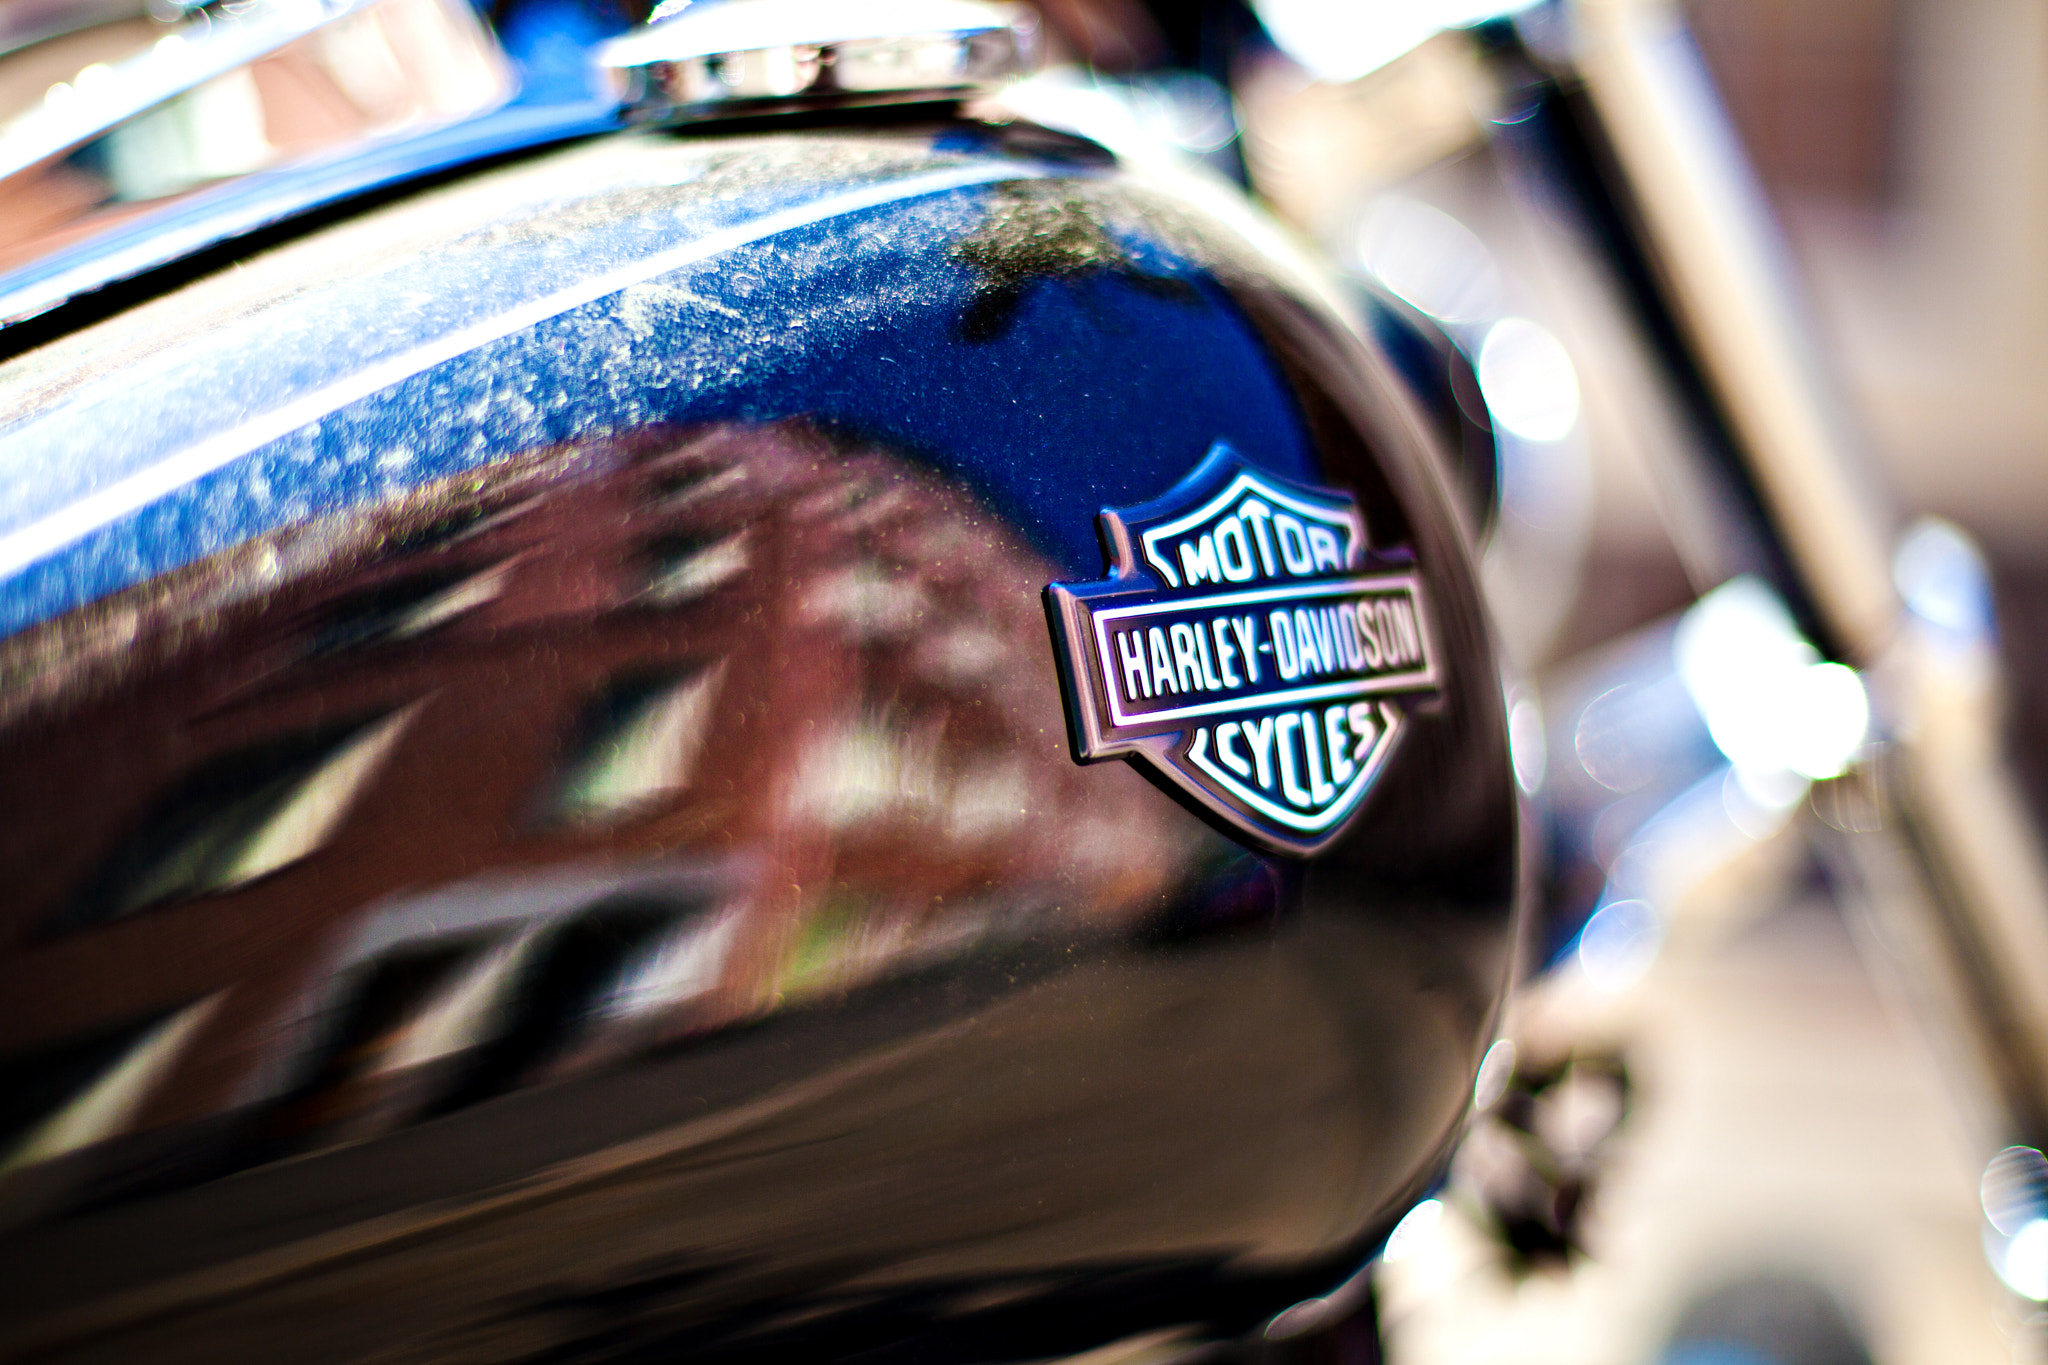 Photograph HARLEY-DAVIDSON by Andrey Sherstiuk on 500px